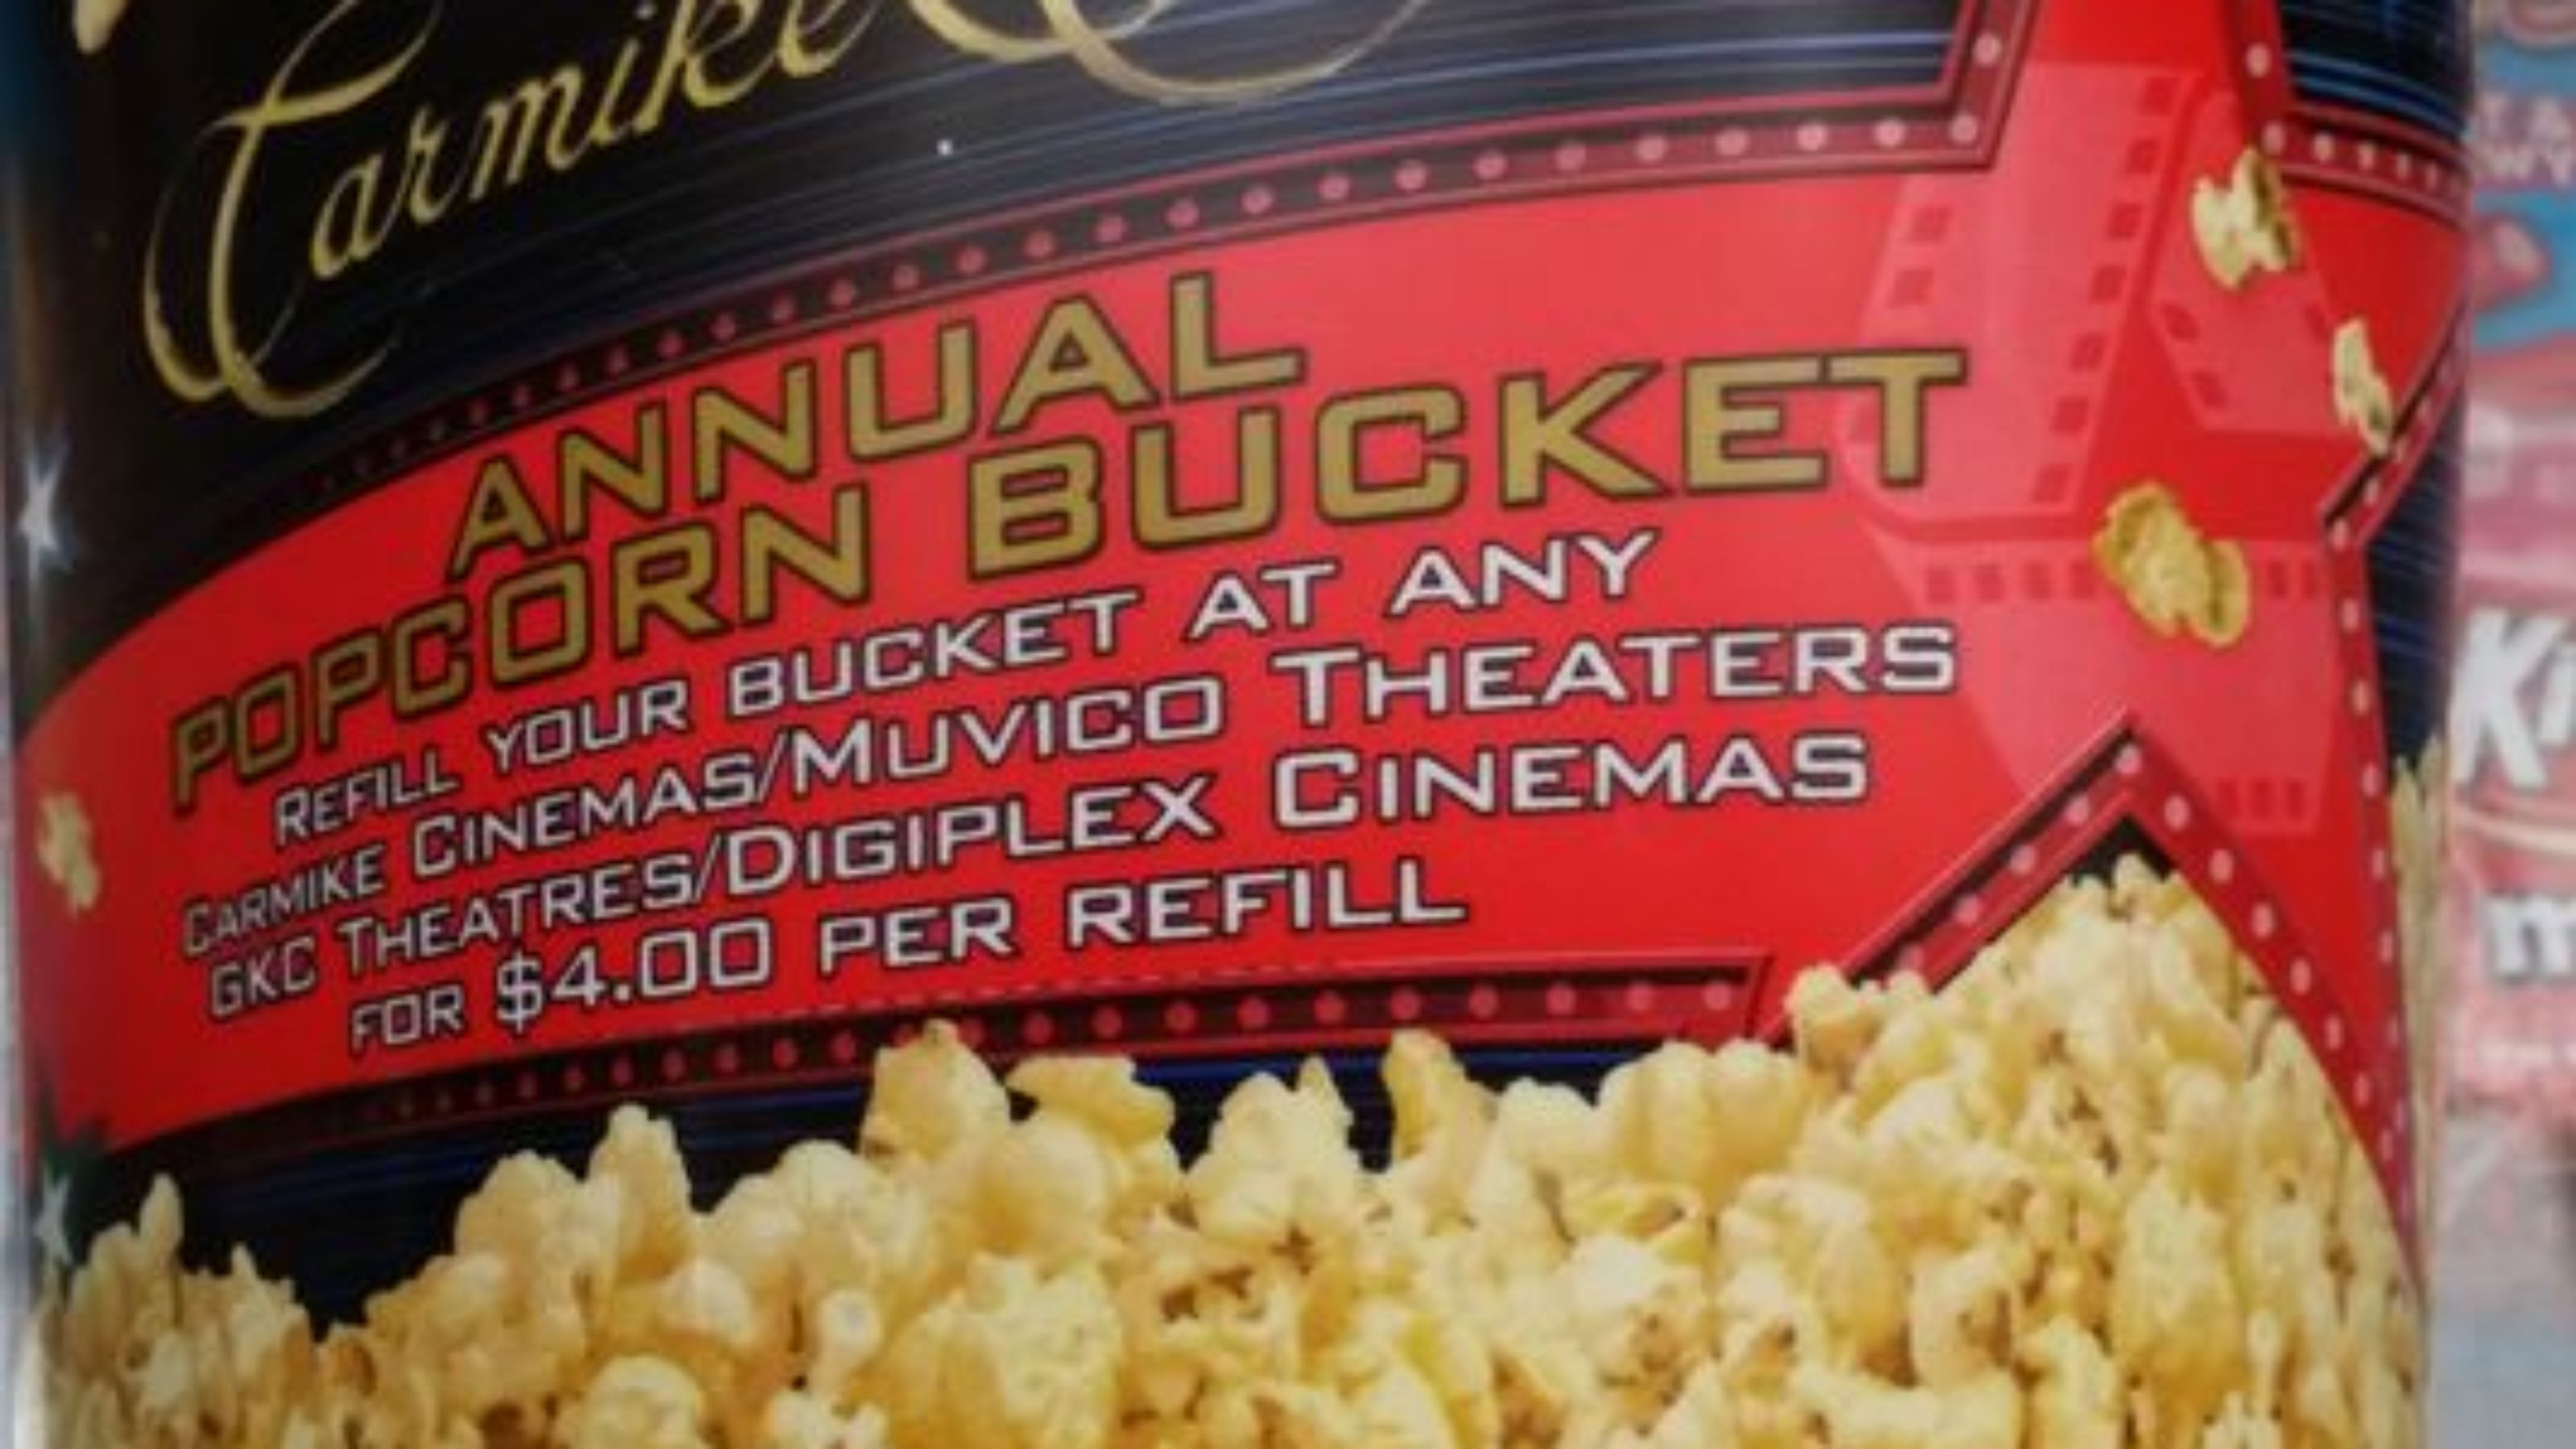 Popcorn Bucket: Regal Cinemas Popcorn Bucket - Regal Cinema Free Popcorn Printable Coupons